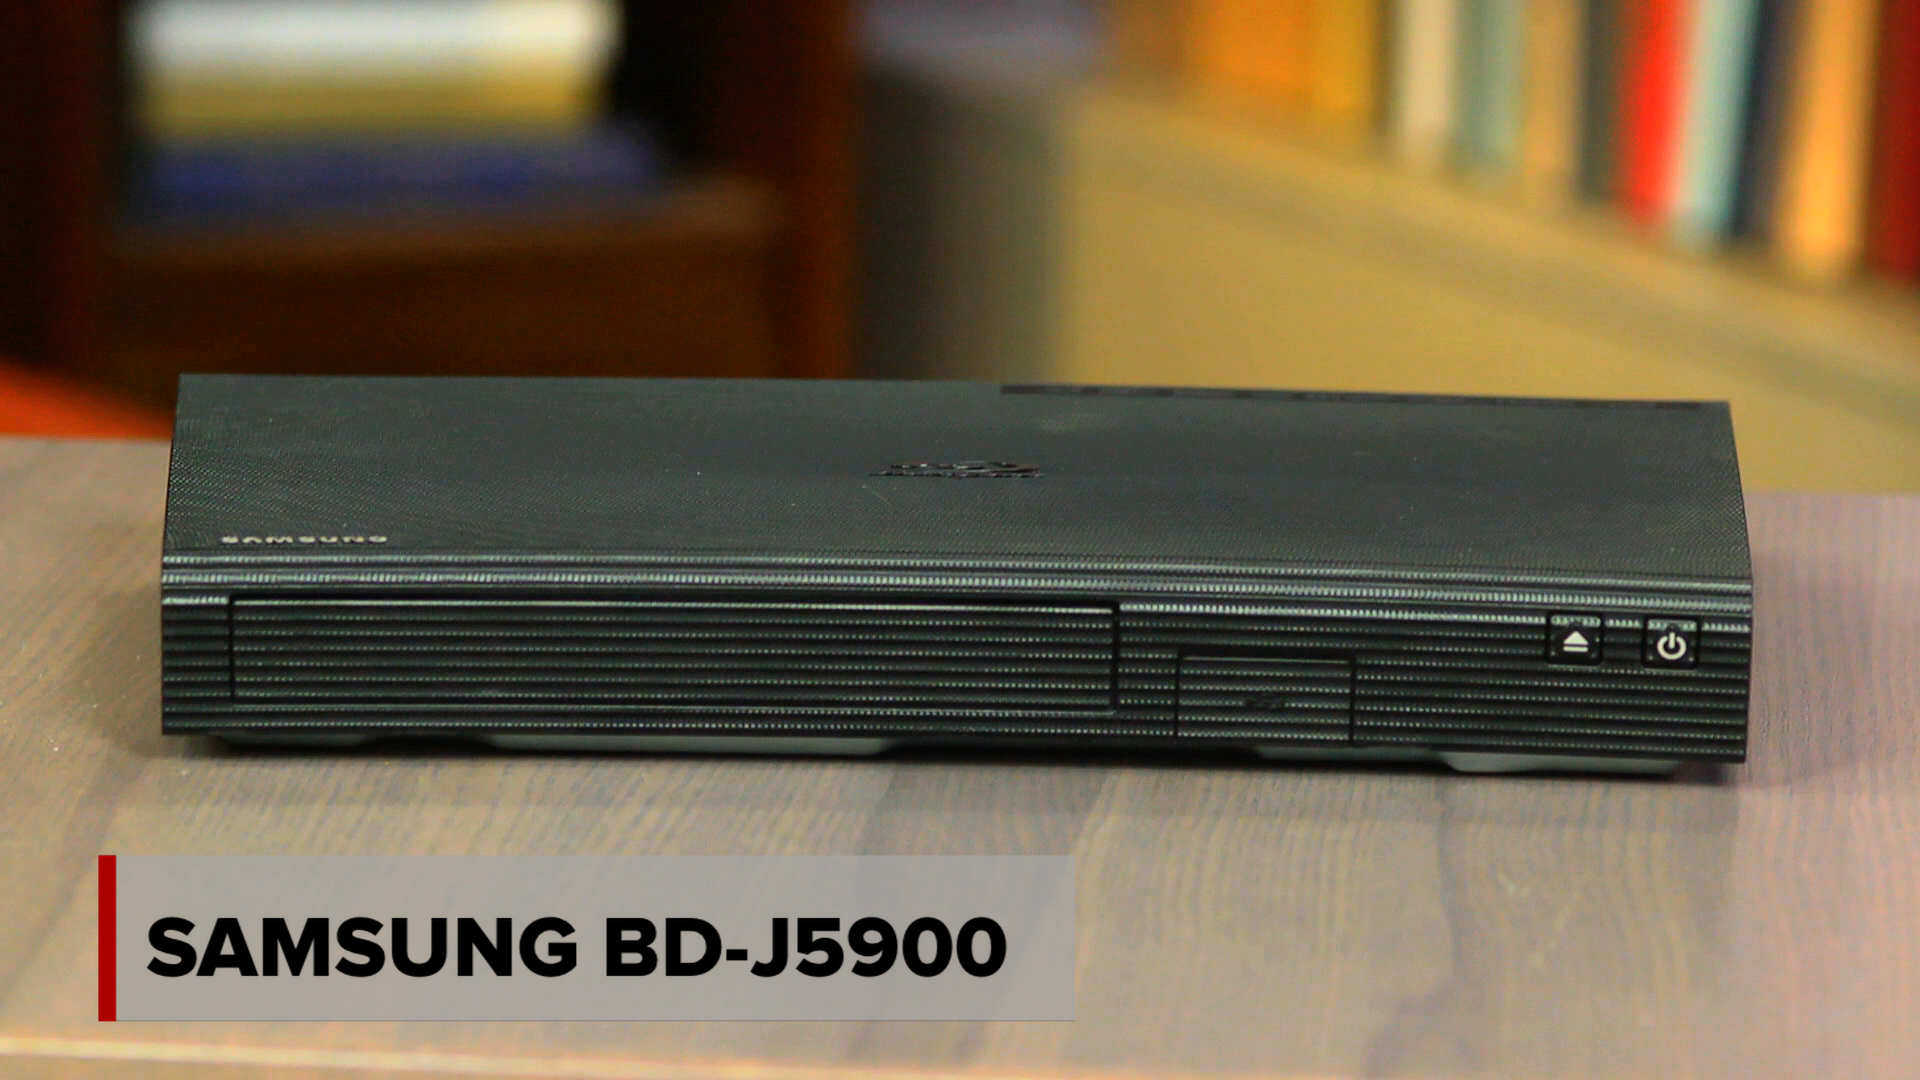 Video: Samsung's curvy Blu-ray player is a value buy